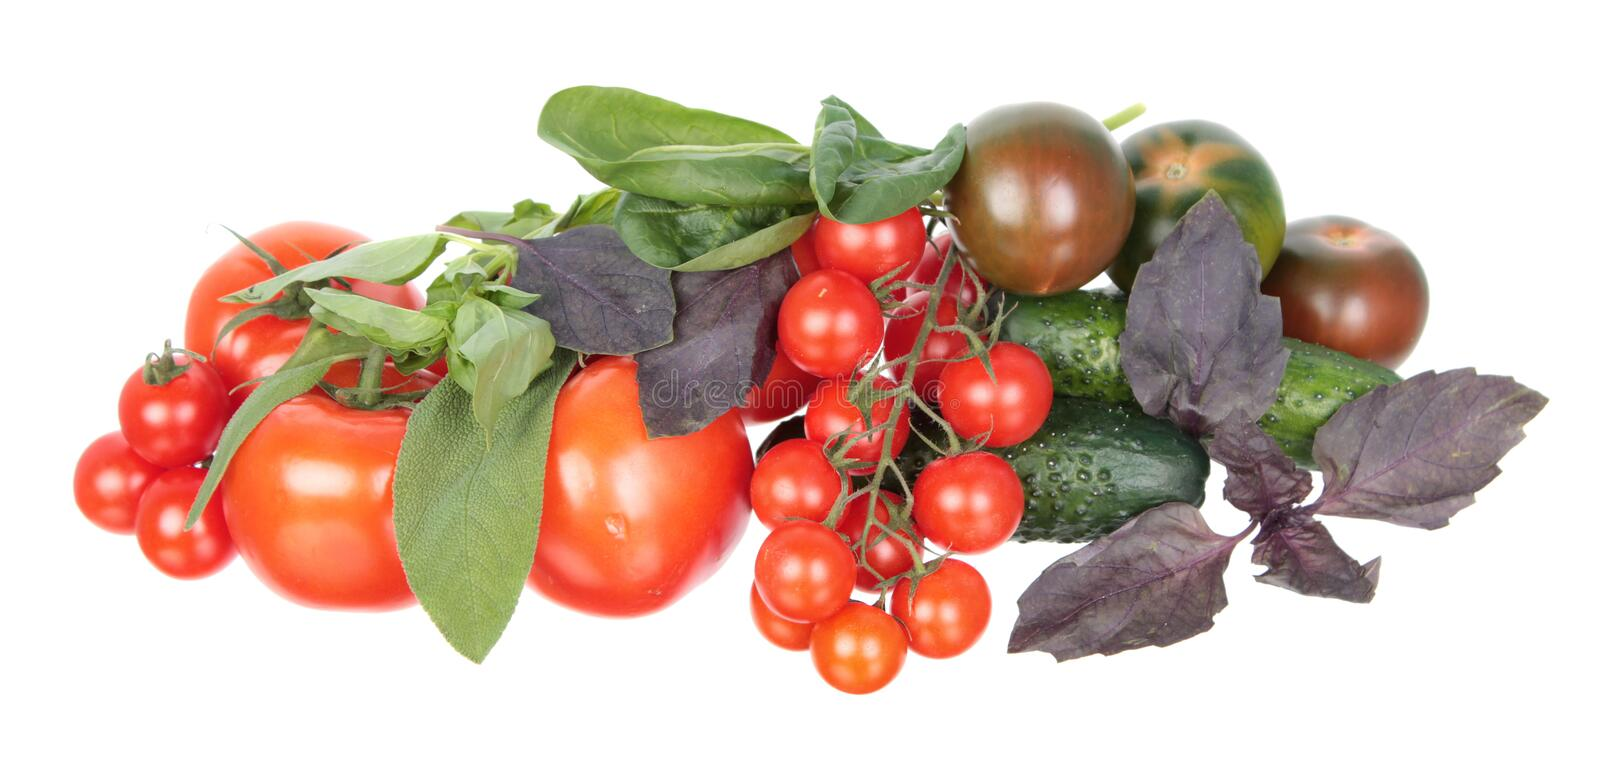 Fresh different red tomatoes, green cucumbers, purple and green basil and sage leaves isolated on white background stock photo